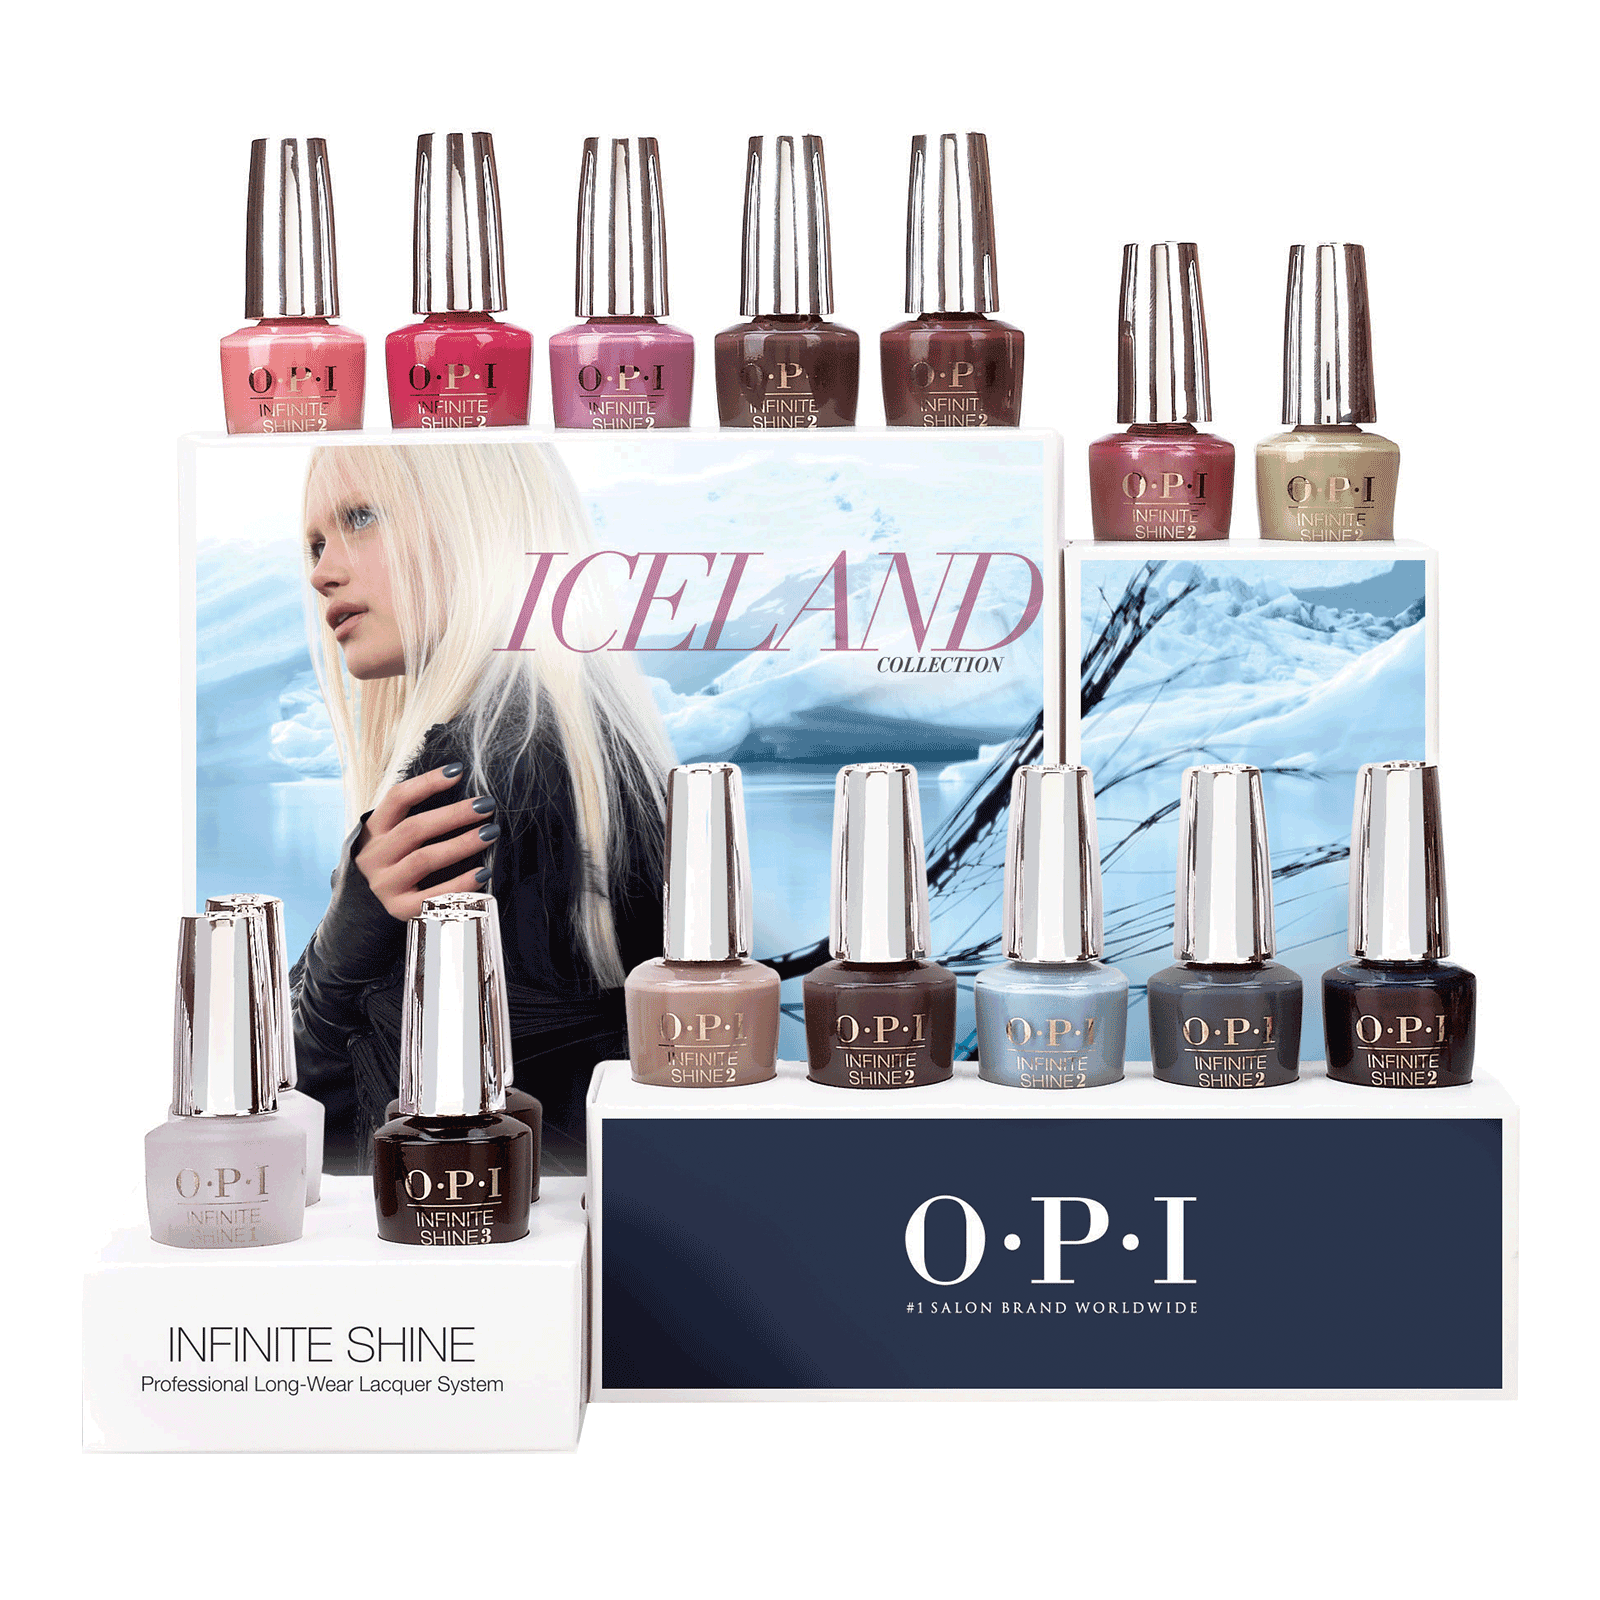 OPI_ICELAND-COLLECTION-2017_Display